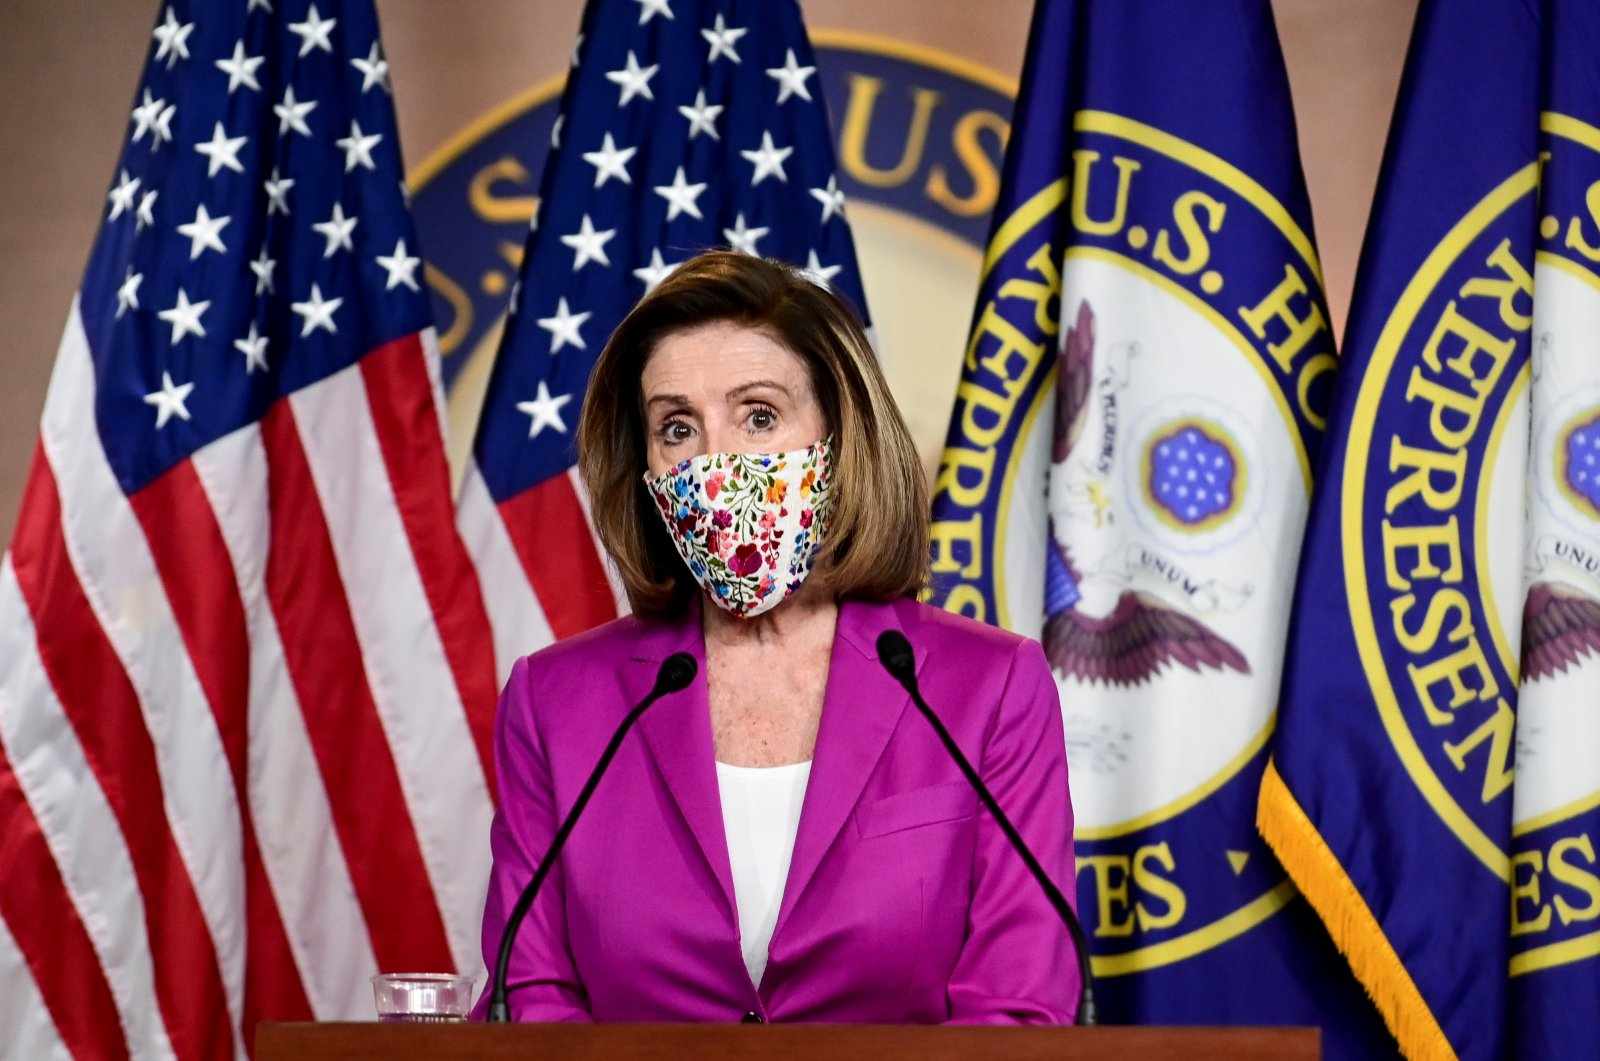 U.S. House Speaker Nancy Pelosi (D-CA) speaks to reporters a day after supporters of U.S. President Donald Trump occupied the Capitol, during a news conference in Washington, U.S., Jan. 7, 2021. (Reuters Photo)